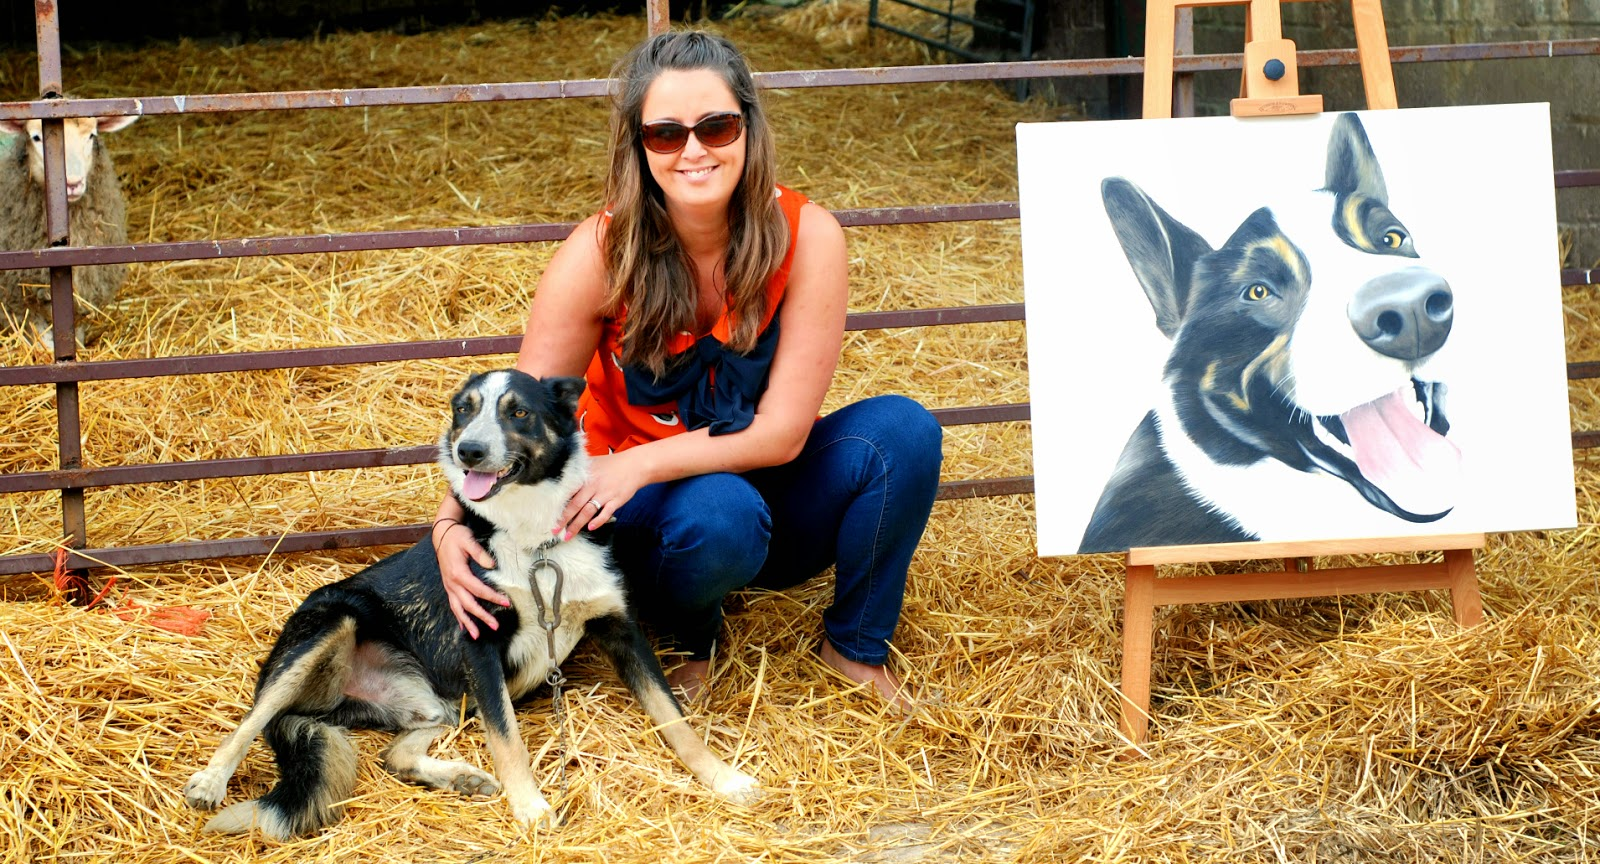 Border Collie Portraits of Jed with owner Hannah